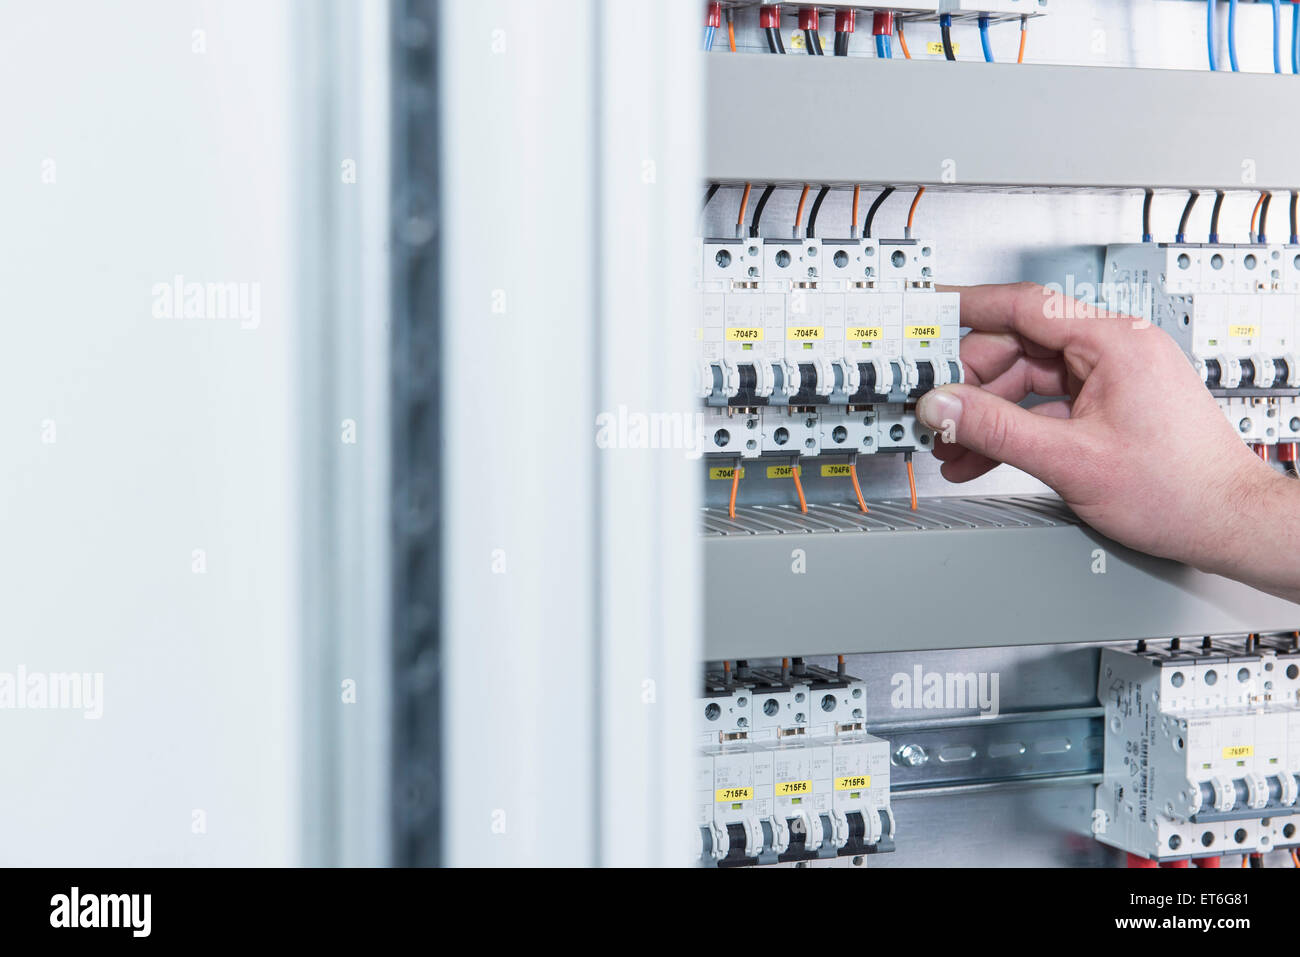 Switching Stock Photos Images Alamy Circuit Breakers Service Billie The Girl Close Up Of Electrician Electrical Fuse In Distribution Fusebox Munich Bavaria